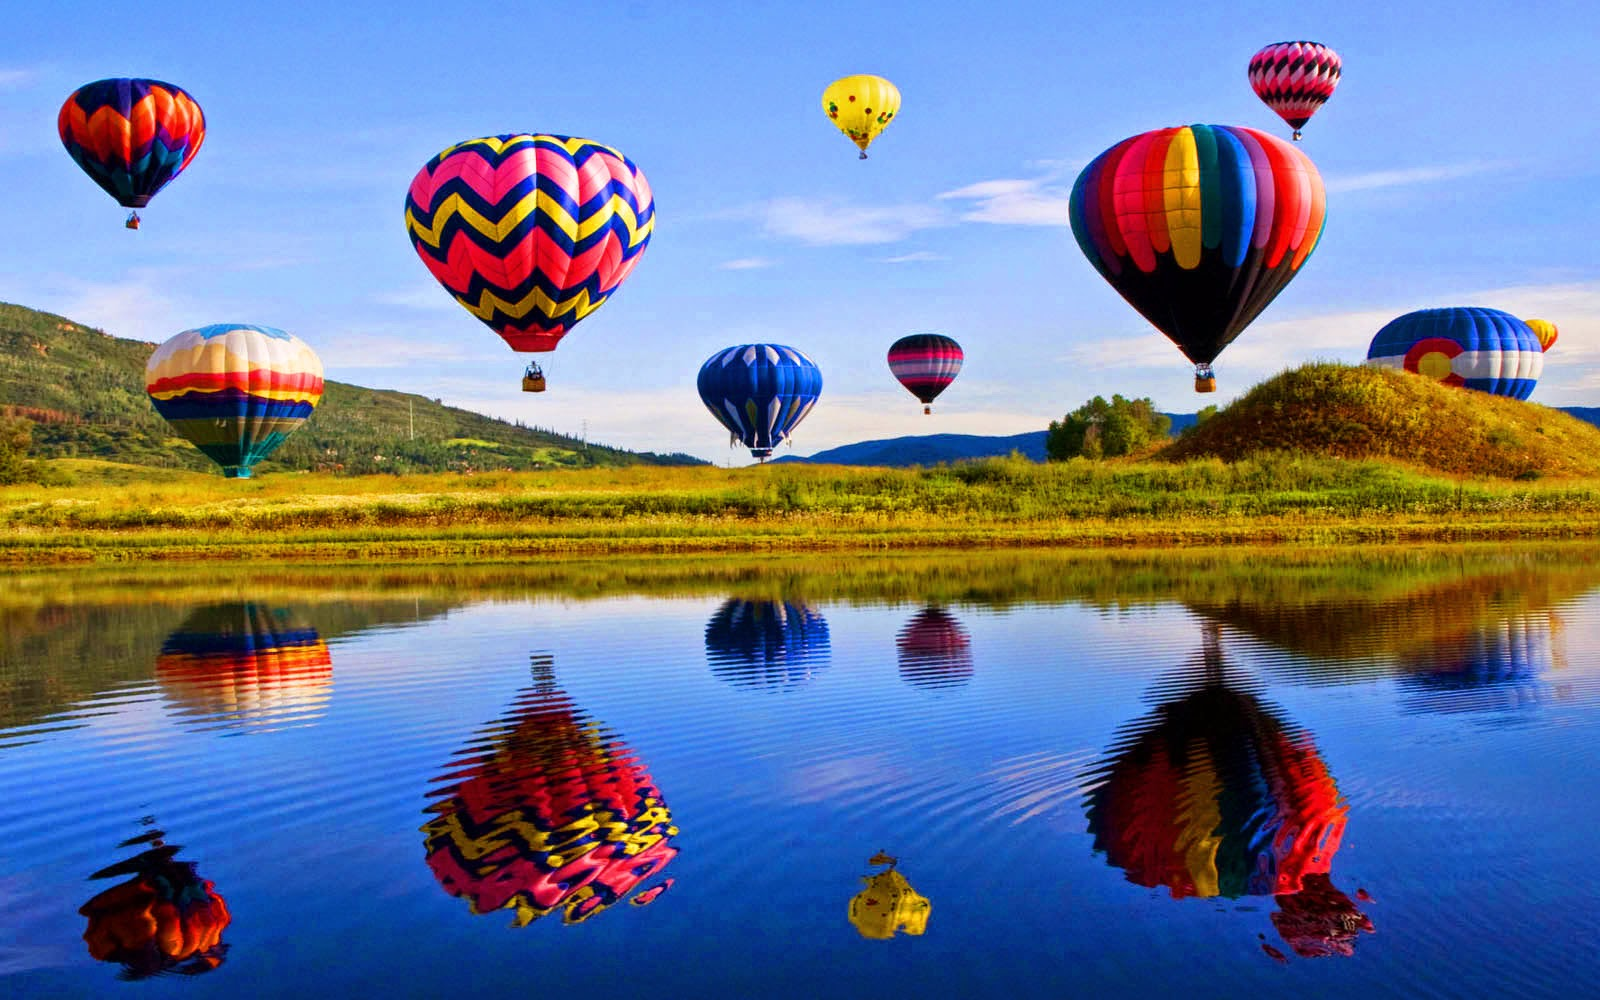 image-46882482-hot-air-balloon-backgroun